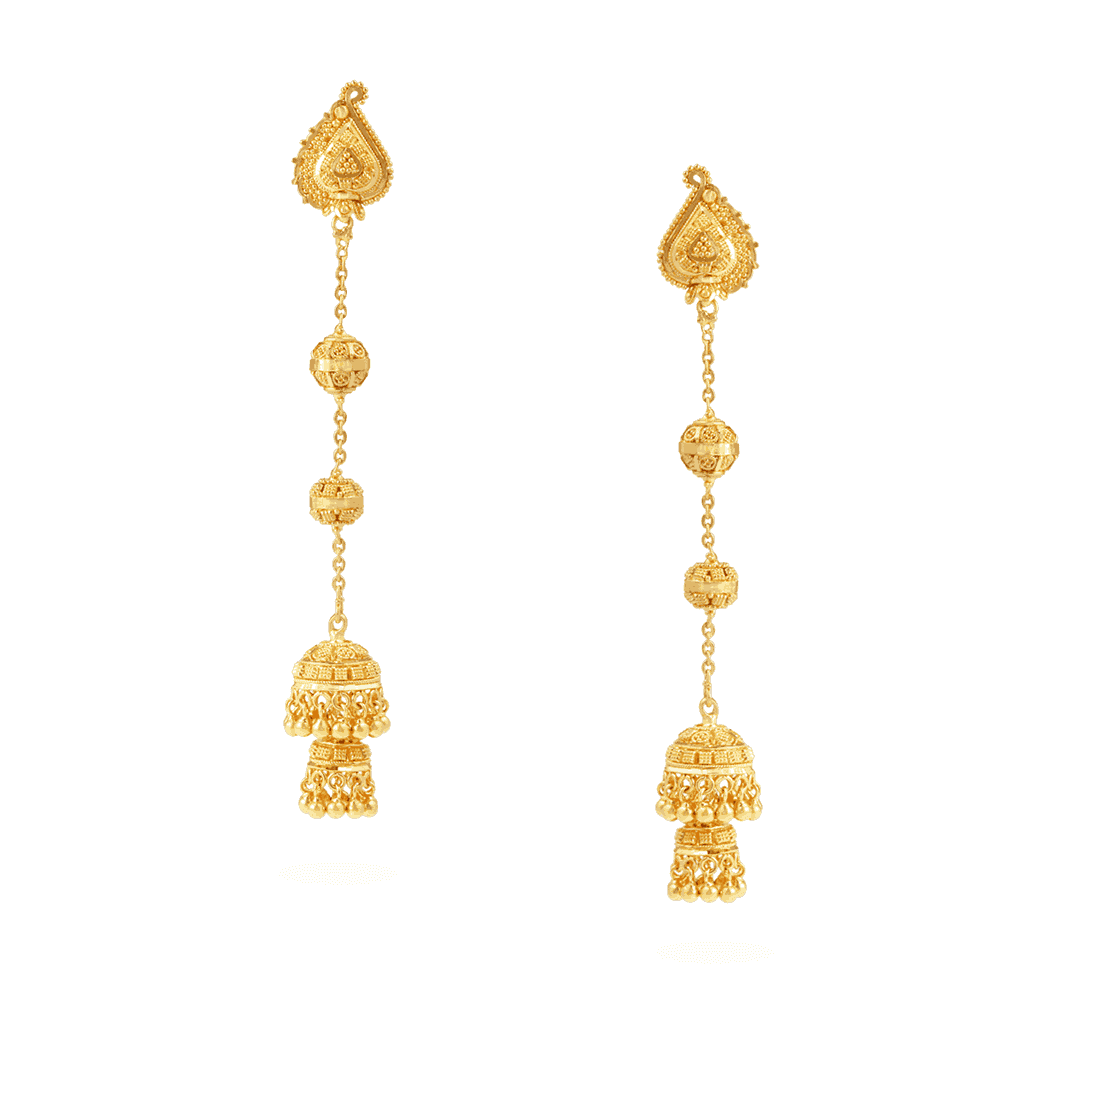 30228, 30233, 30239 - Jali 22ct Gold Jumka Earring